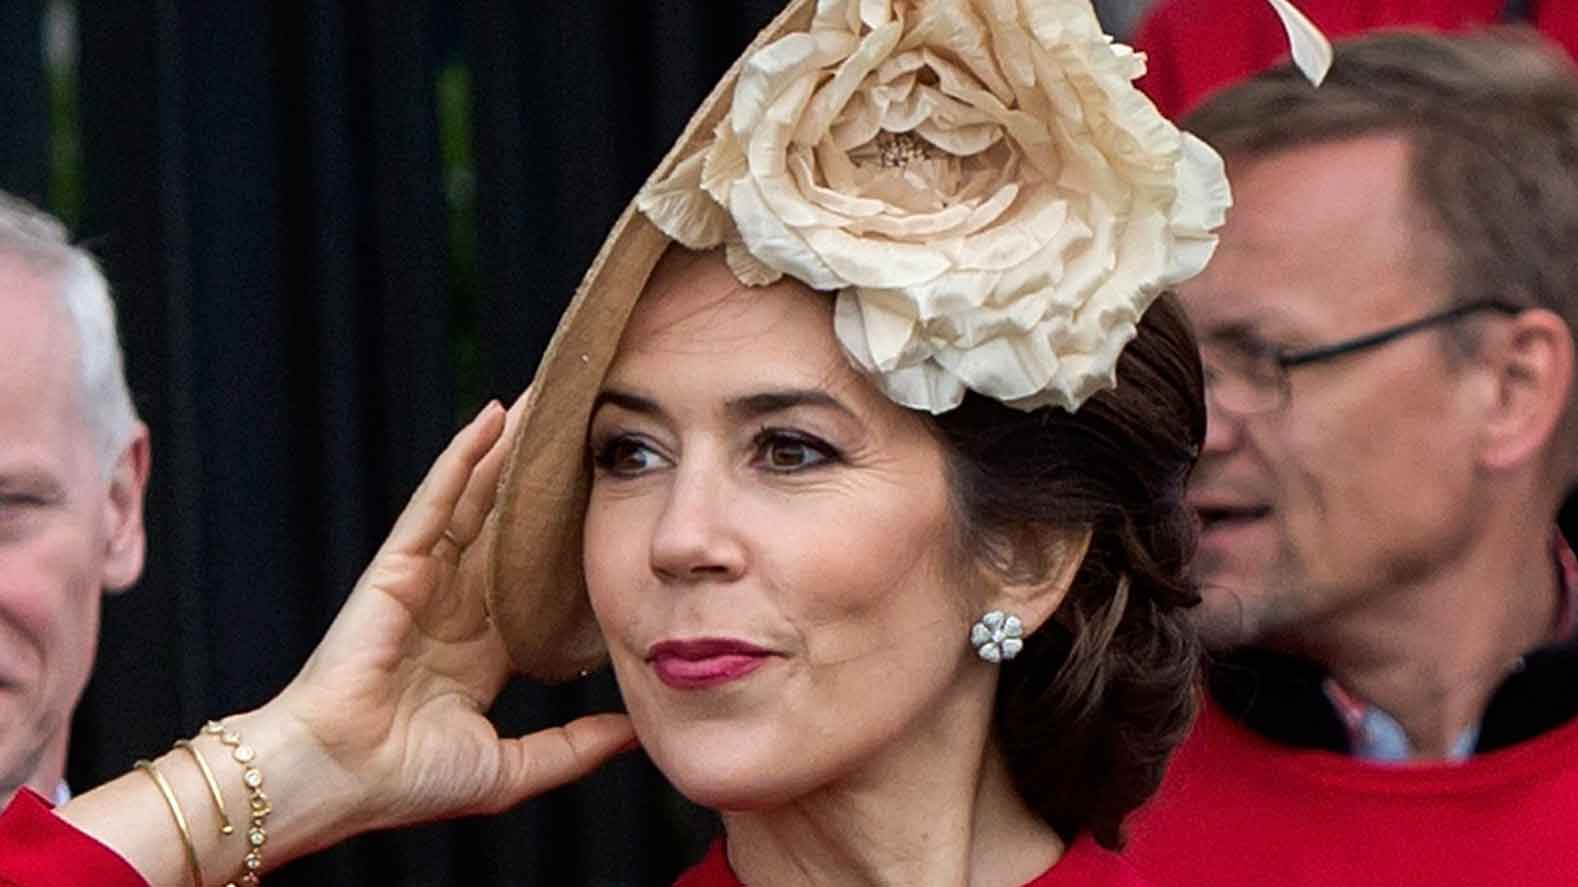 Vision in red! Princess Mary is all class and grace at special celebration